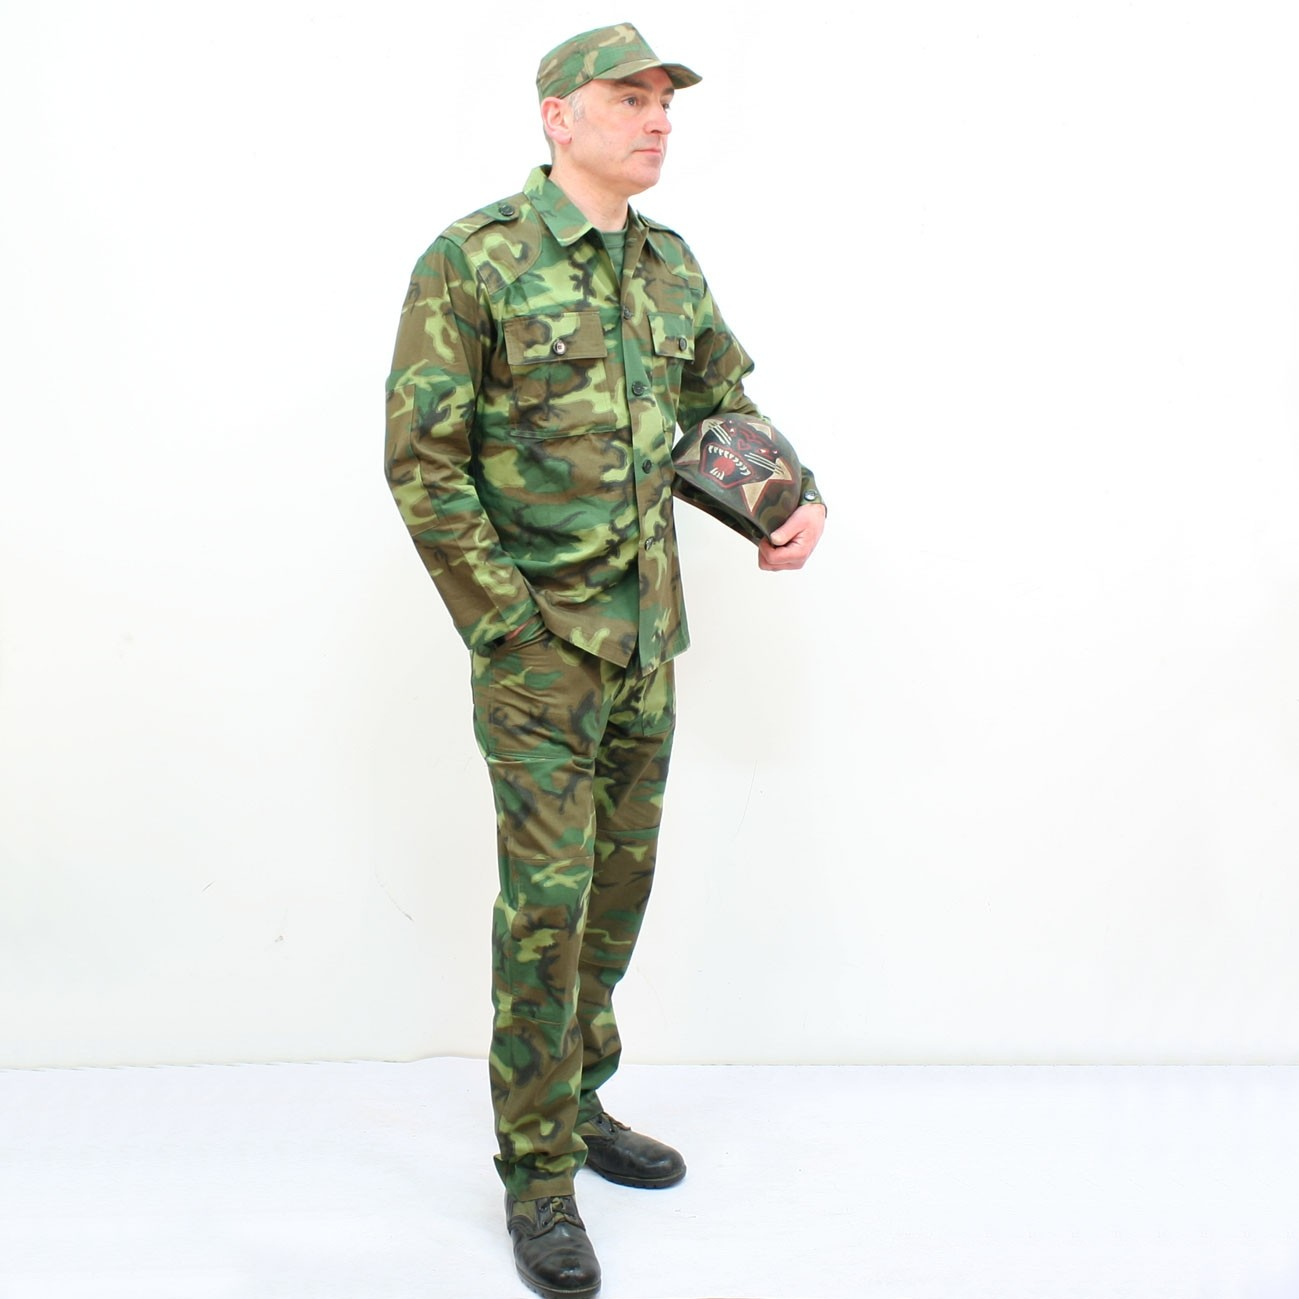 New this week ARVN Ranger camouflage uniform